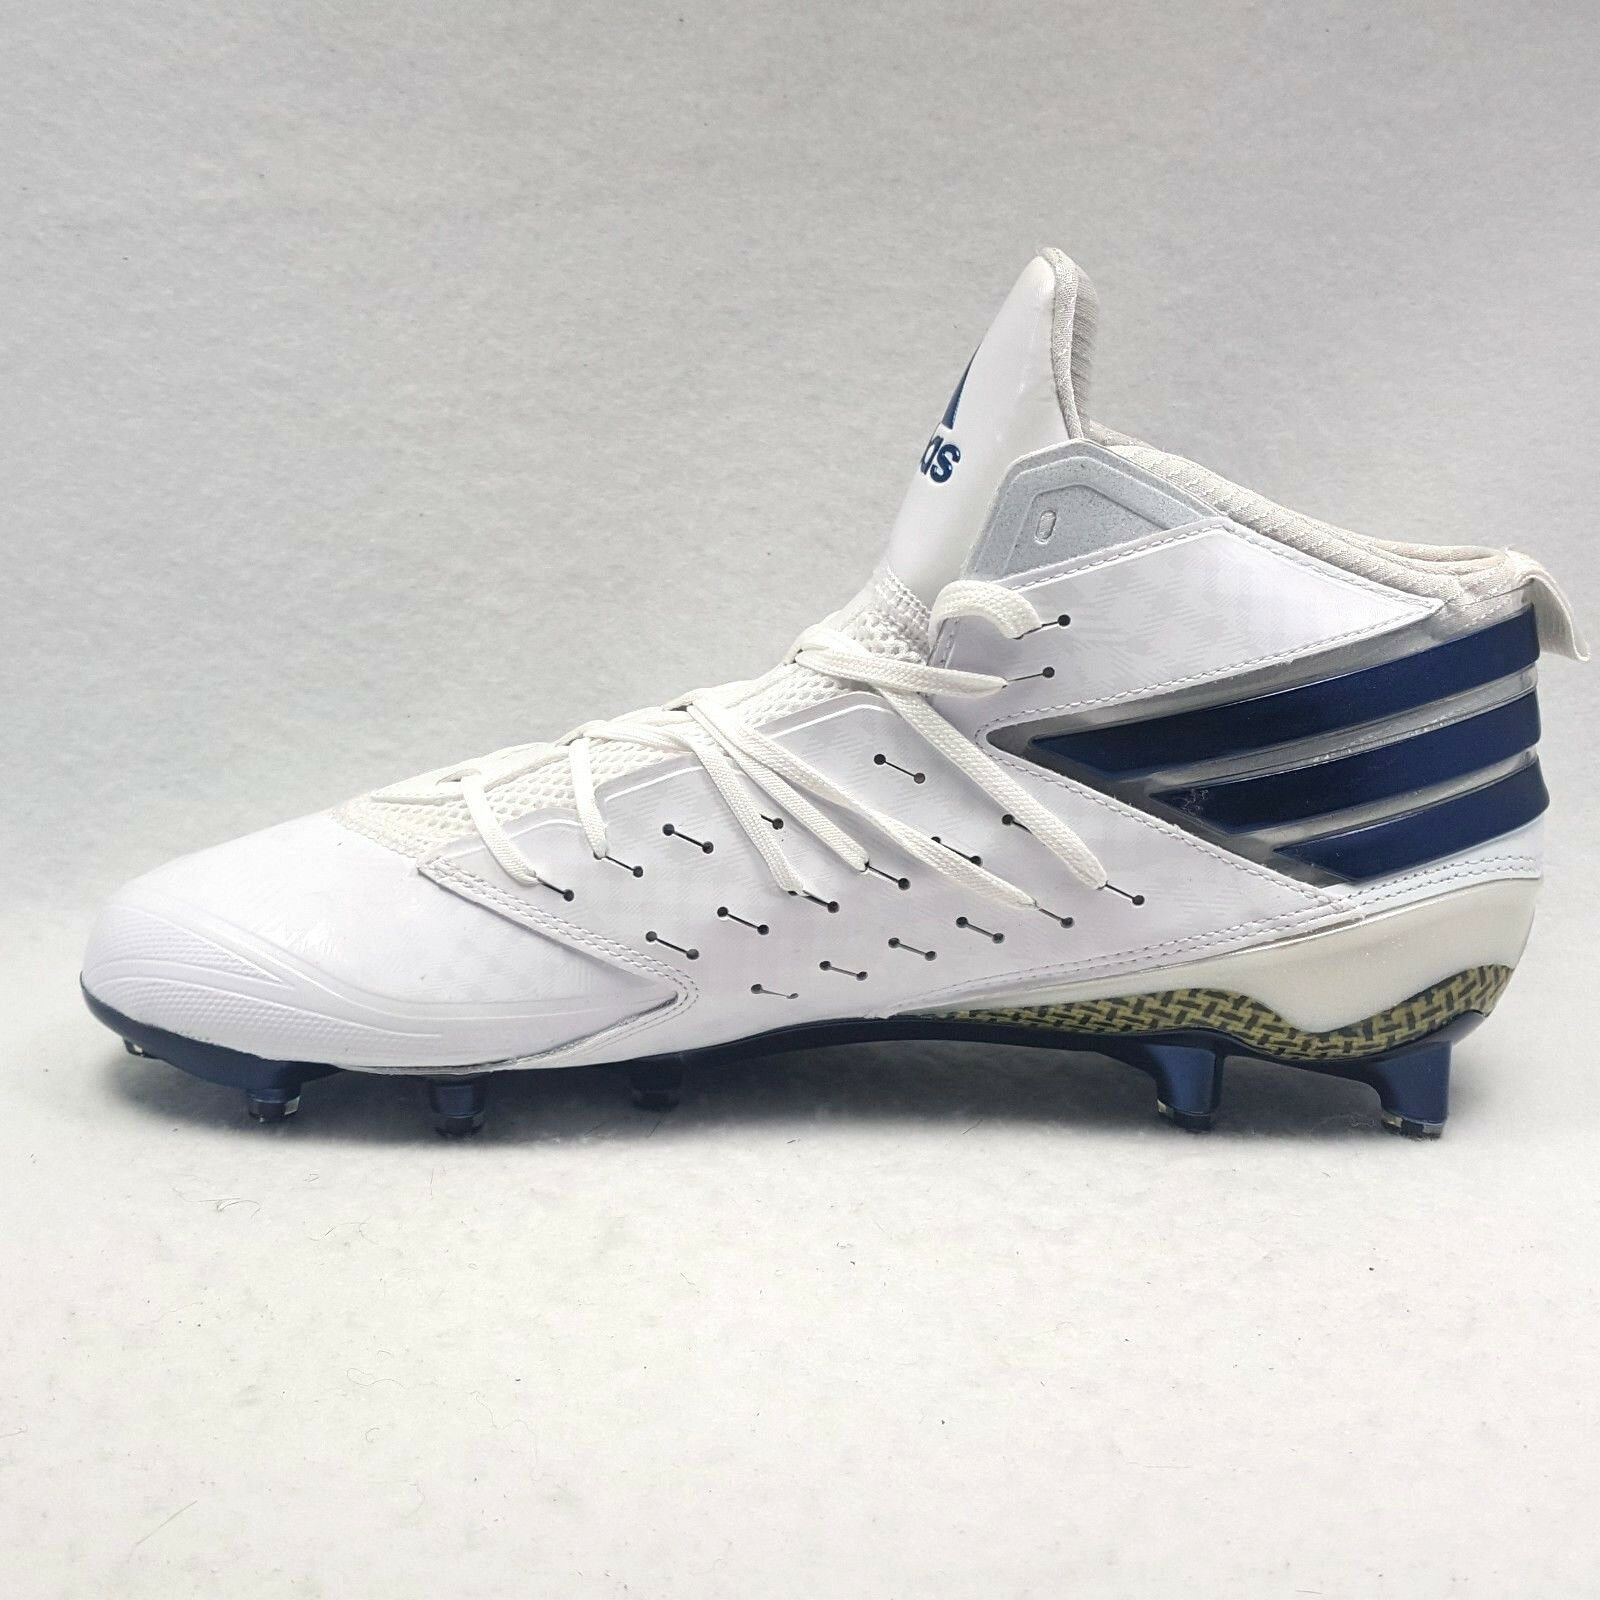 Adidas Freak X Kevlar Men's Football Cleats Sz 12.5 White Blue New